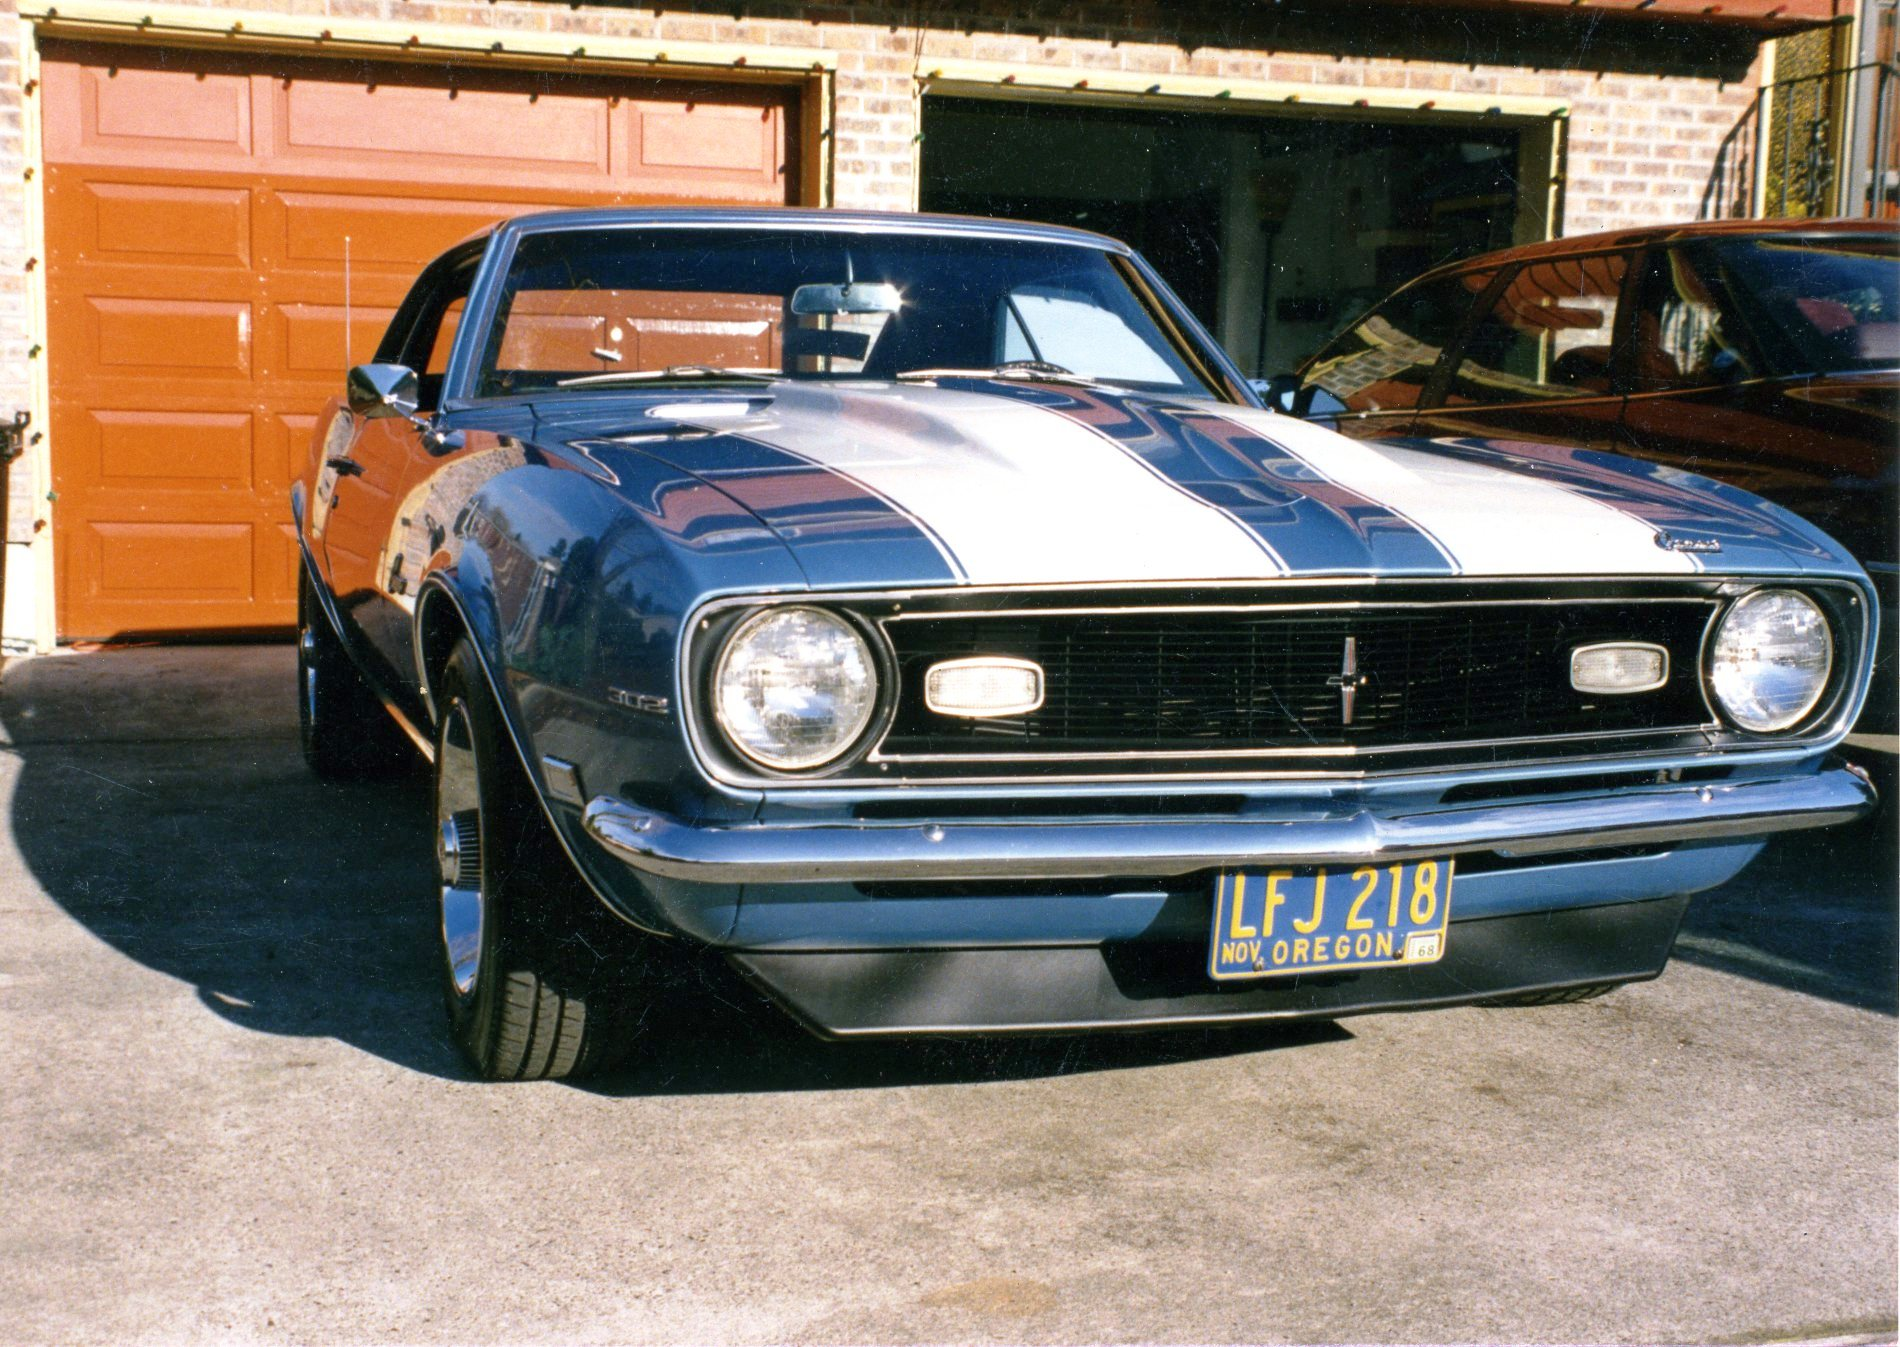 Click image for larger version  Name:68z28side078.jpg Views:52 Size:494.2 KB ID:191974